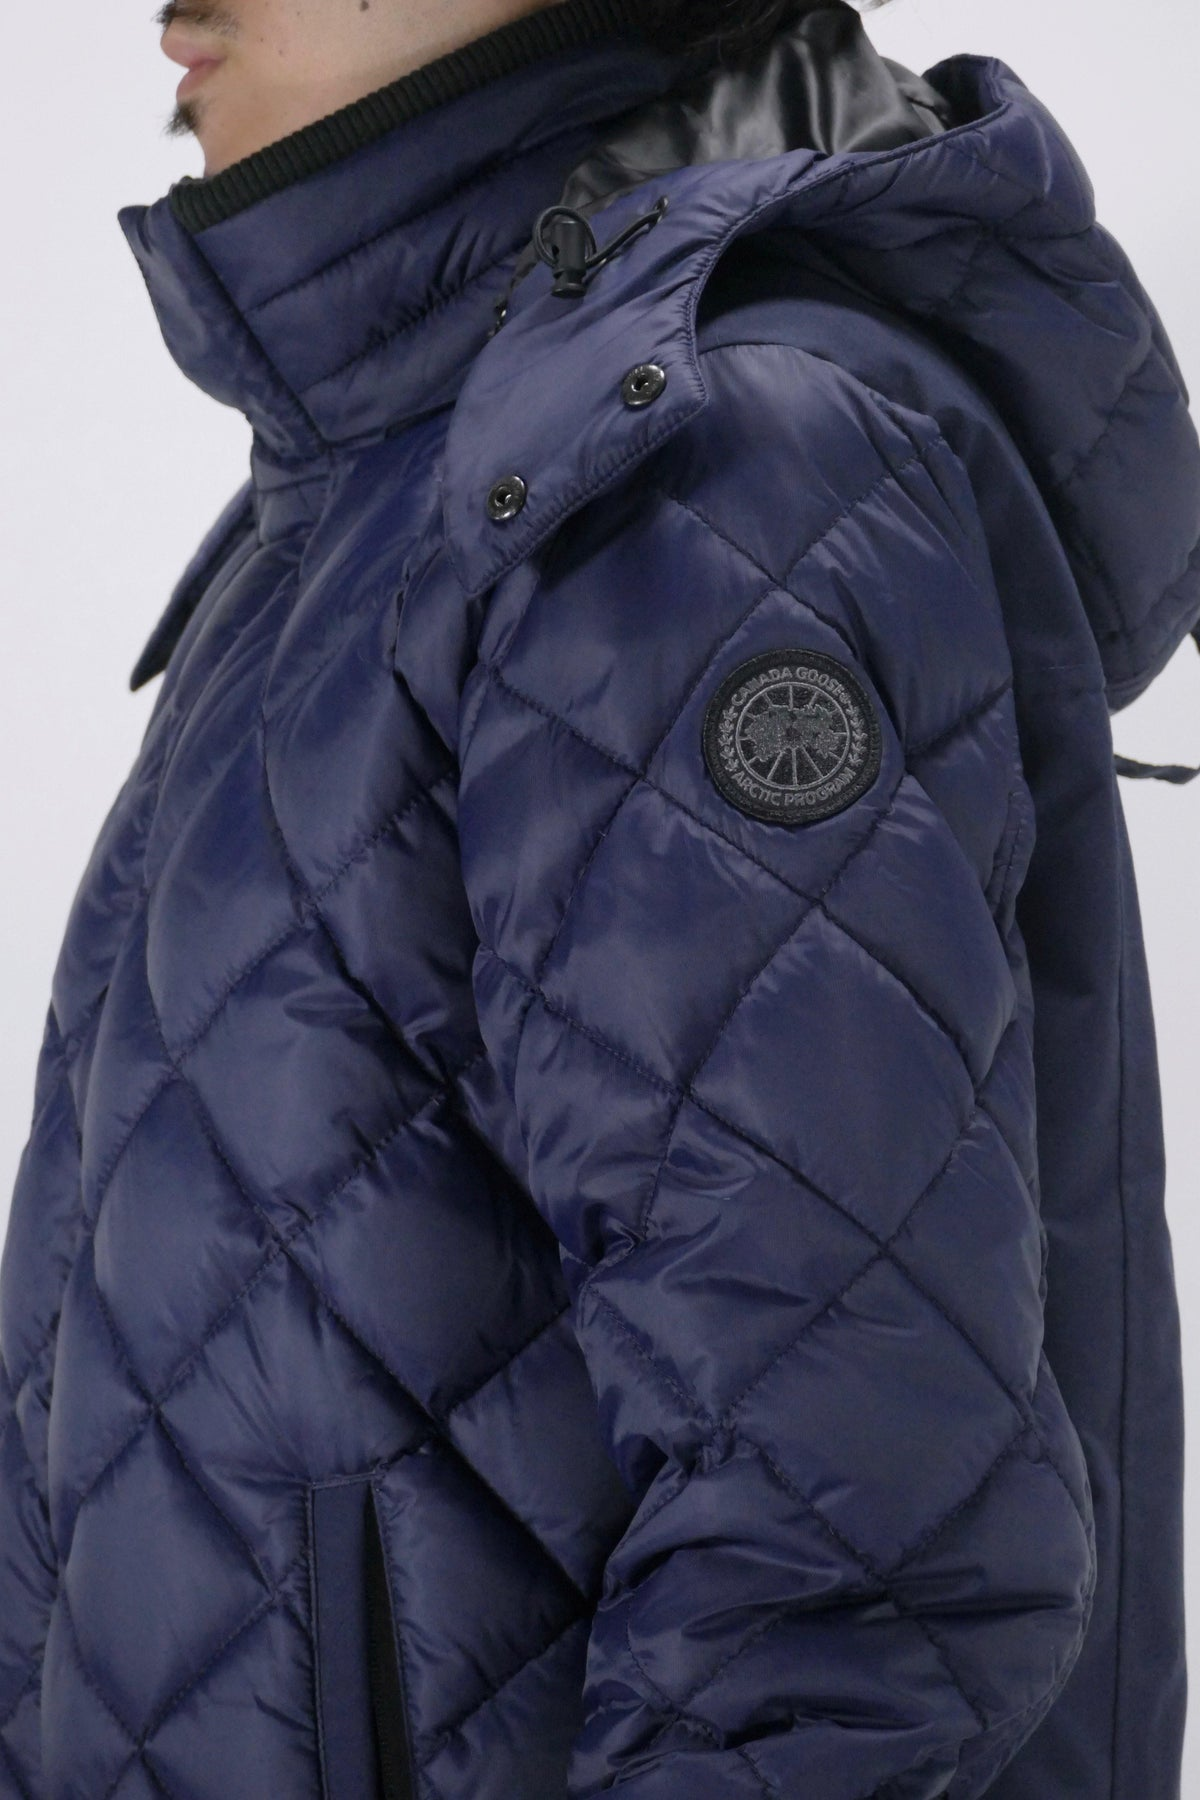 Canada Goose Mens Coat Hendriksen Black Label - Admiral Blue